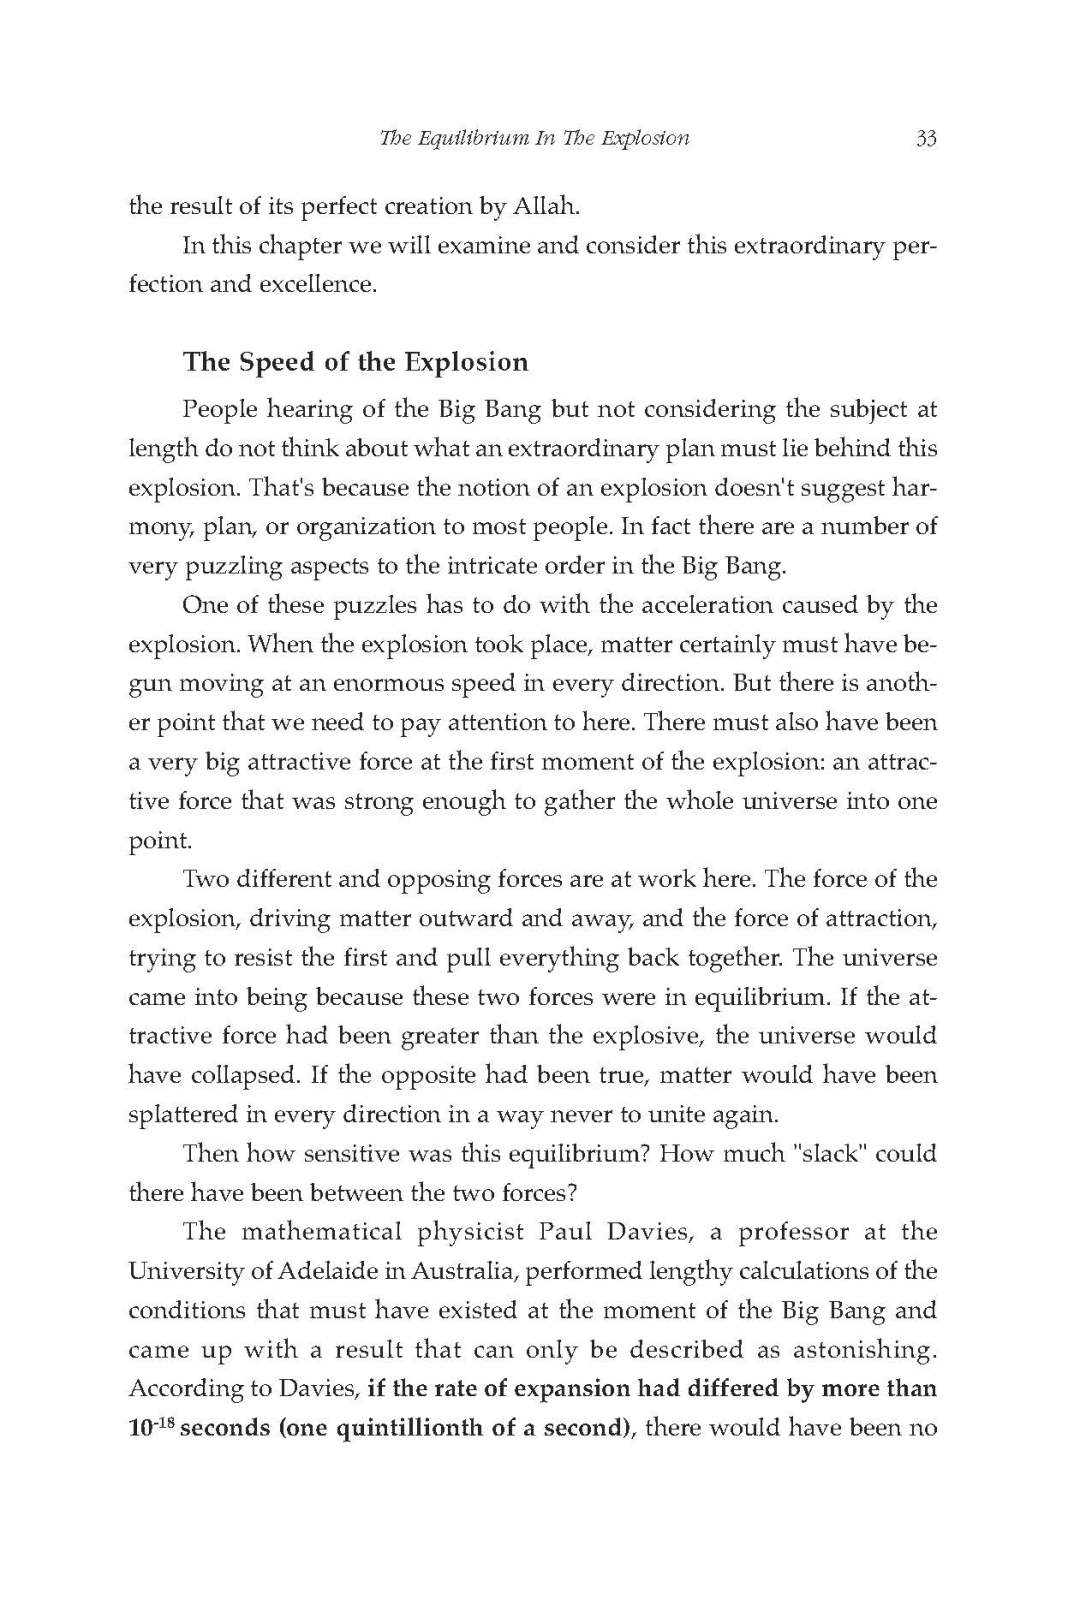 The-creation-of-the-Universe_Page_035